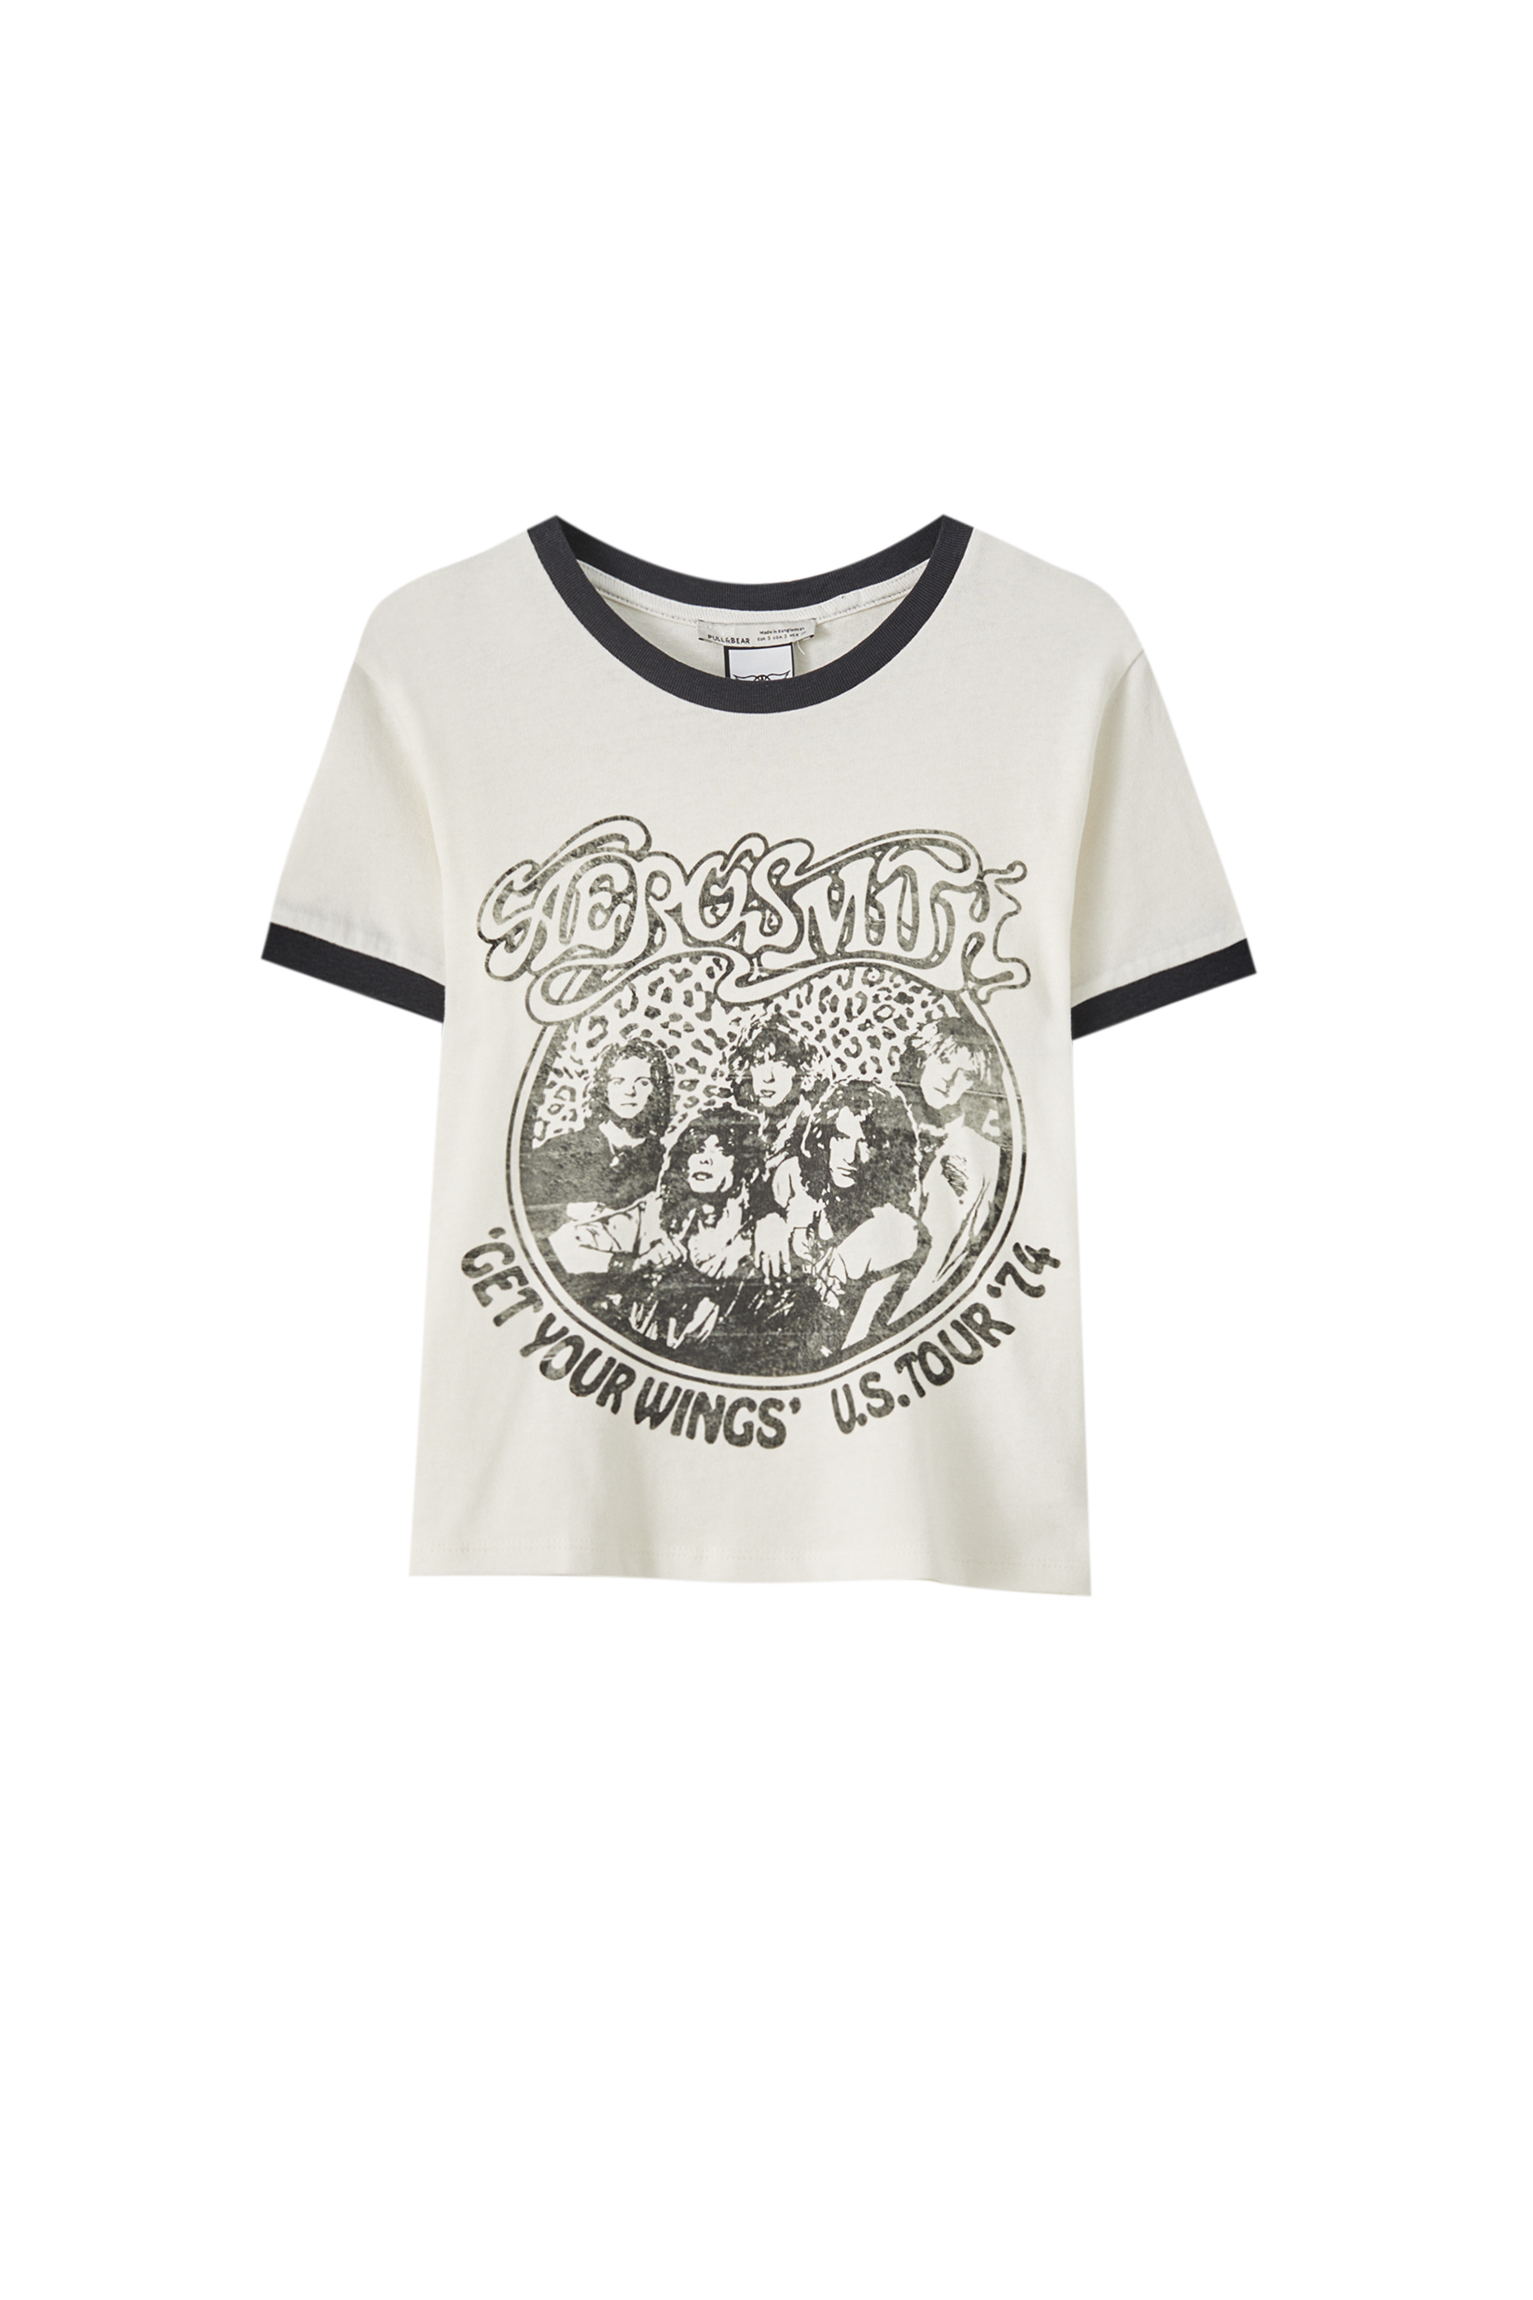 AEROSMITH Get Your Wings US Tour 1974 T-SHIRT NEW  S M L XL XXL official